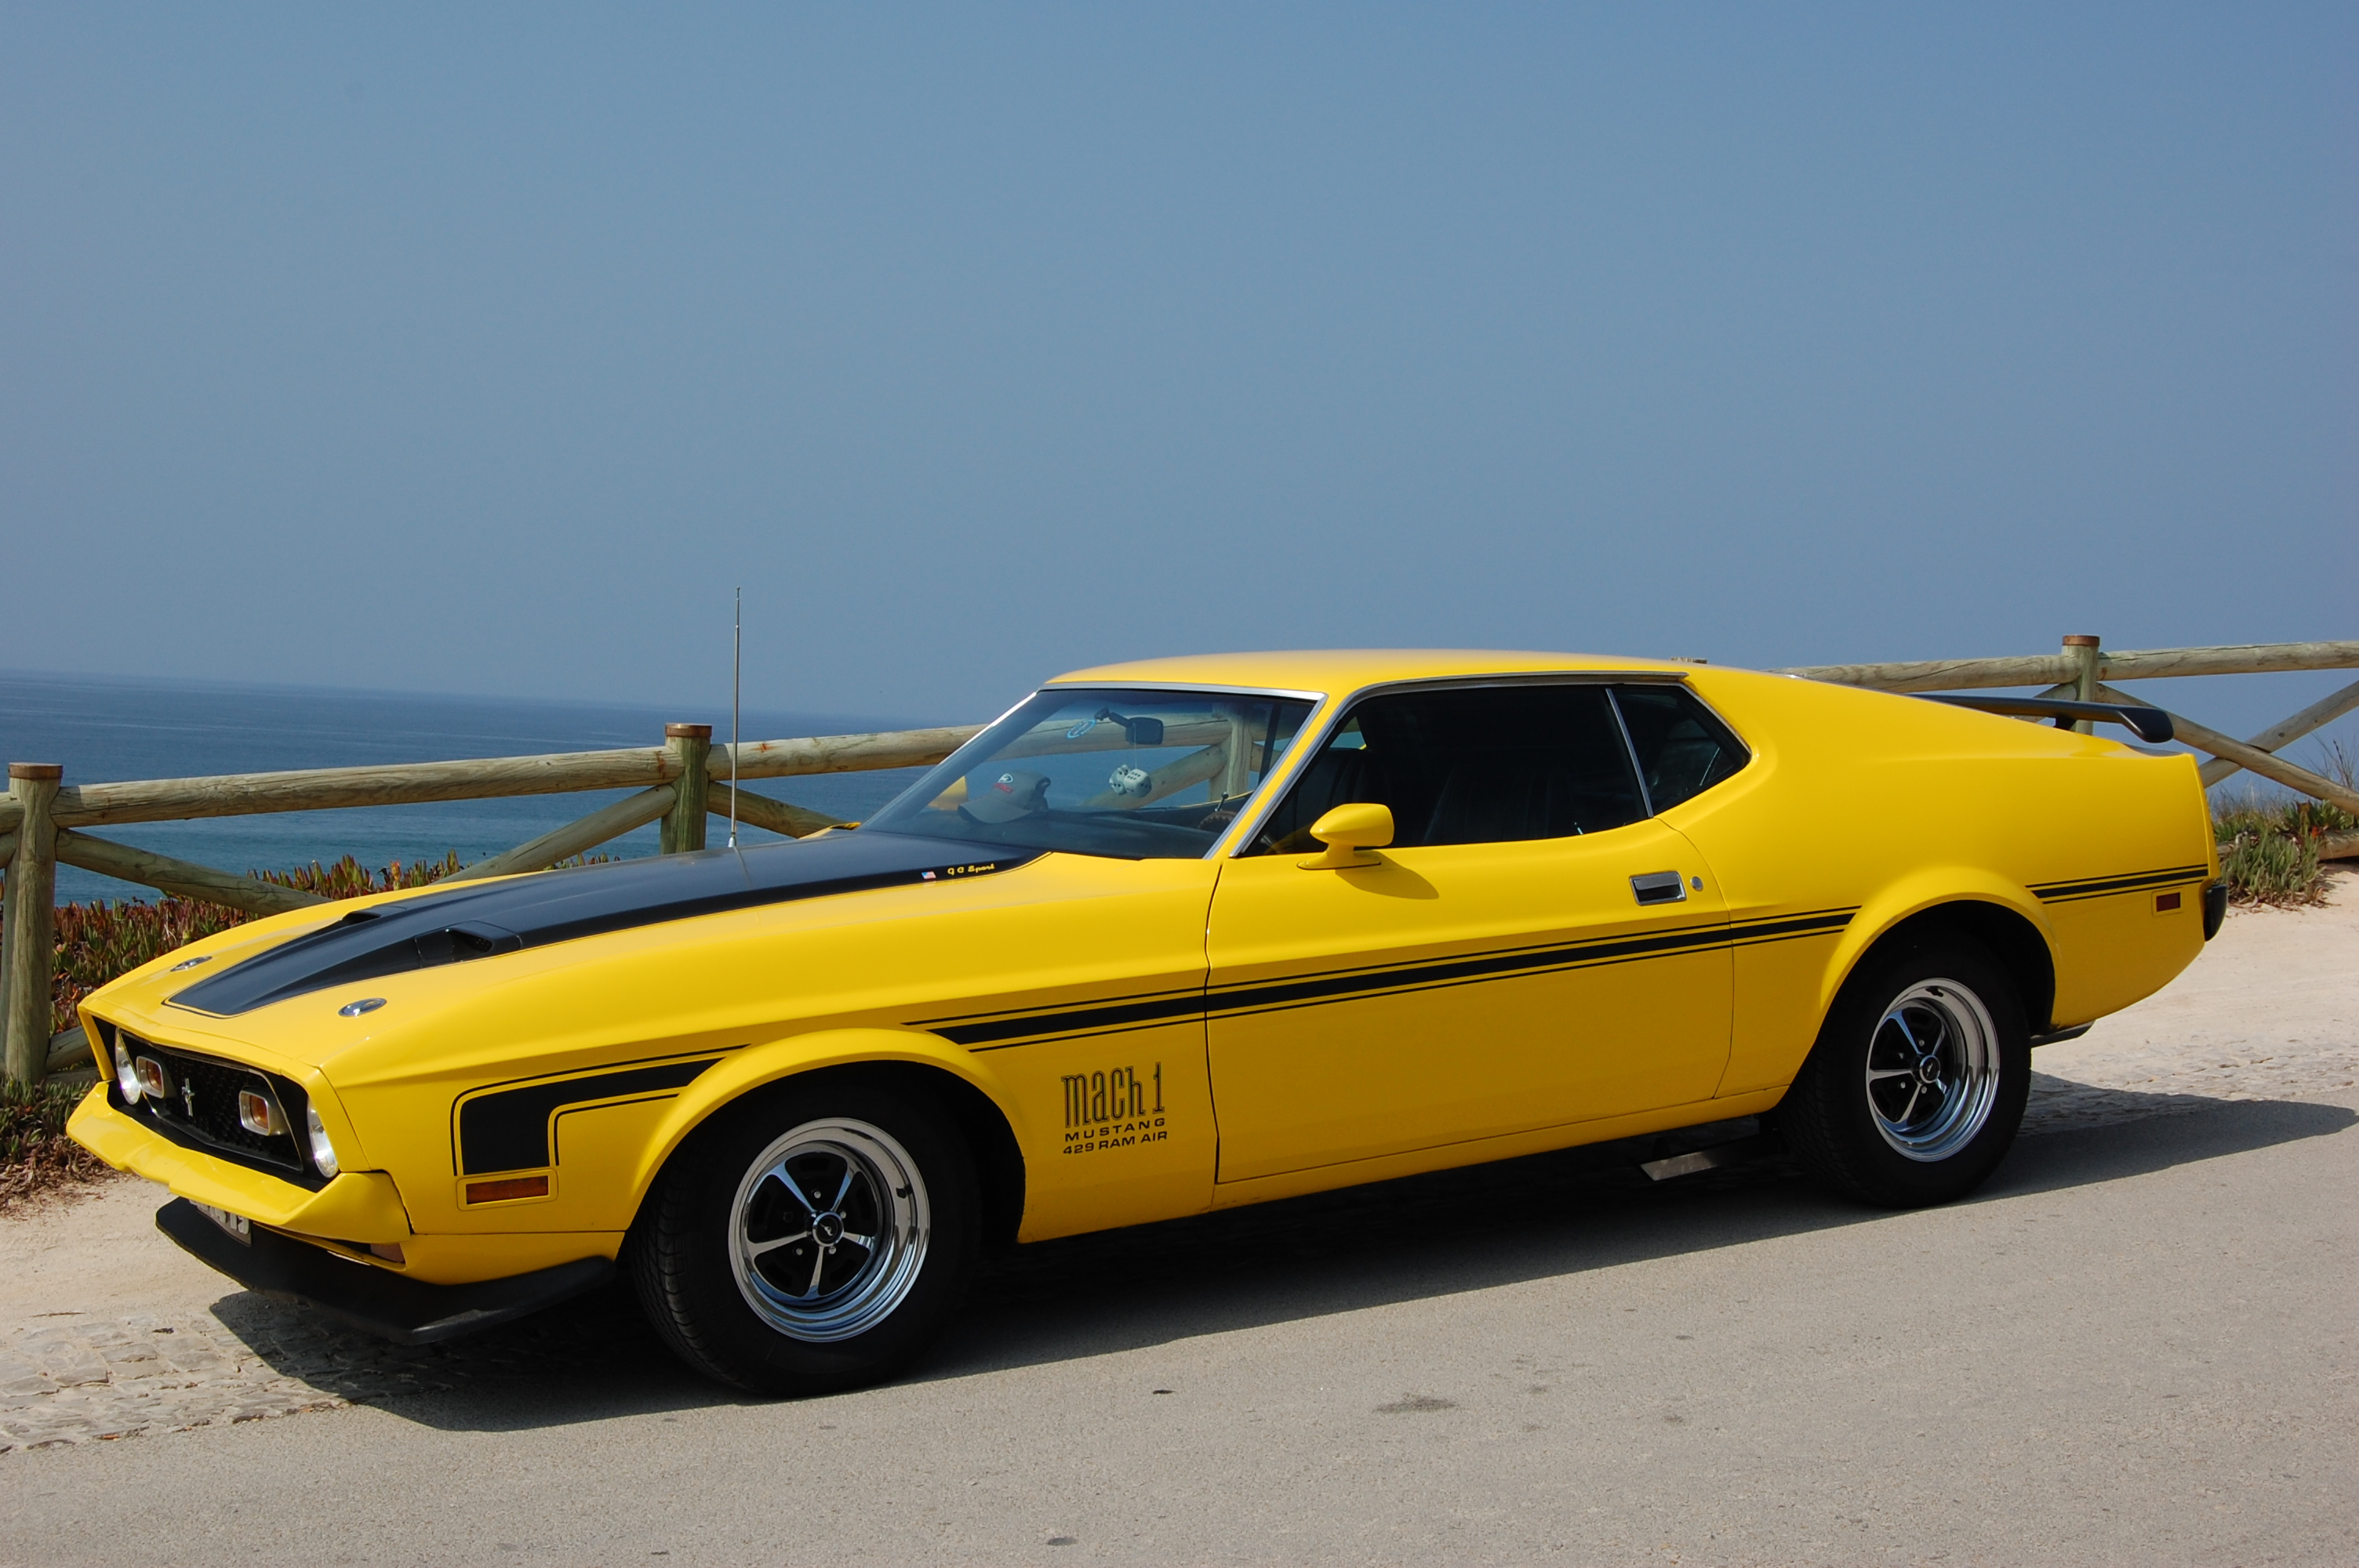 mach 1 yellow cars HD Wallpaper